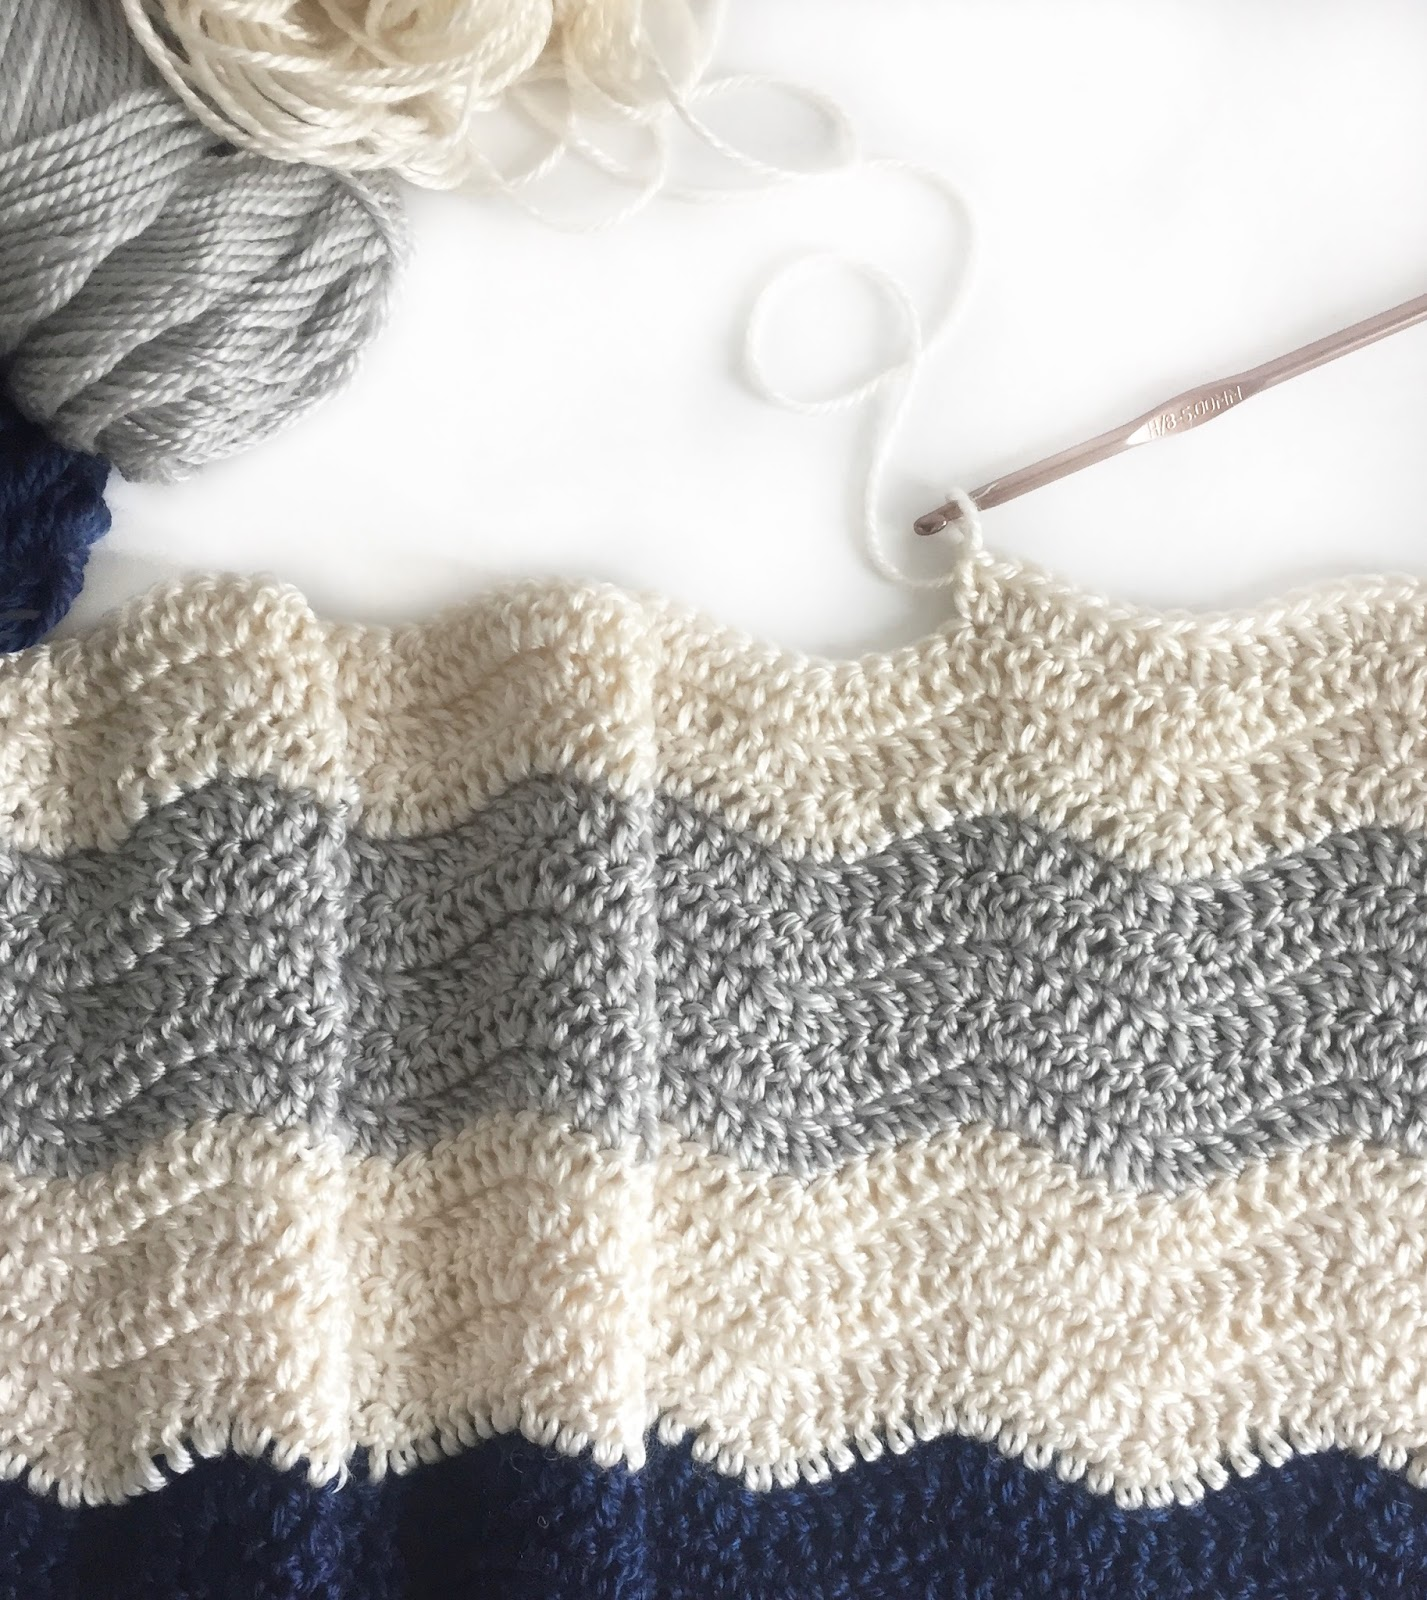 How To Crochet A Ripple Blanket Daisy Farm Crafts